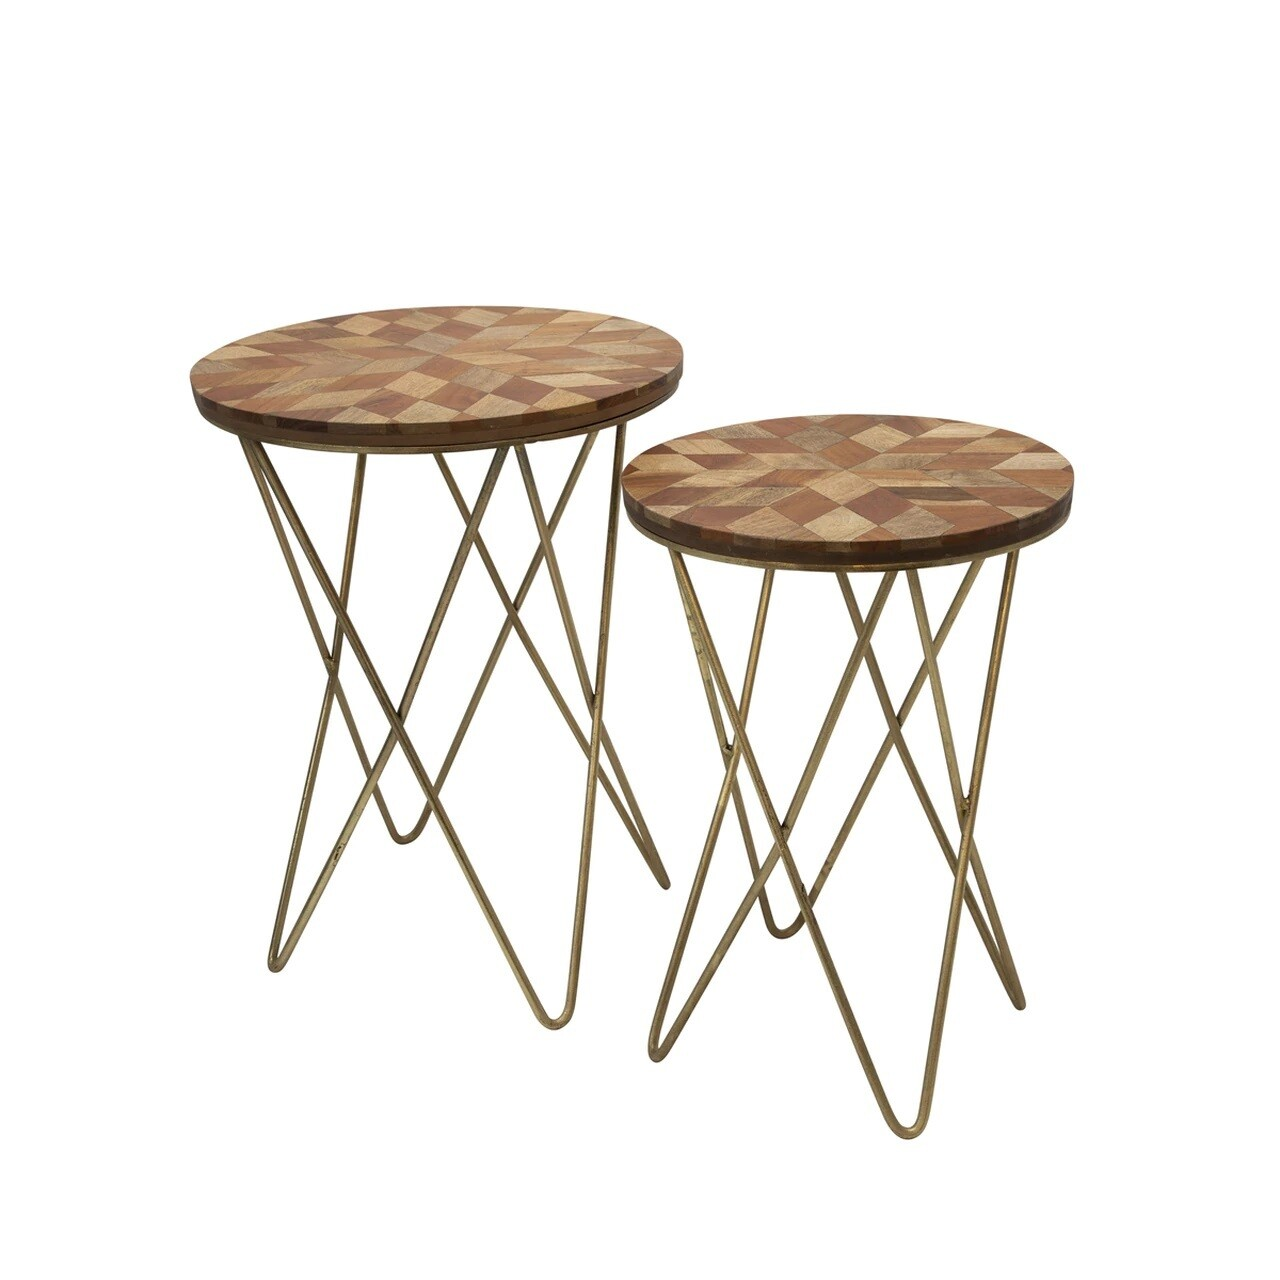 Wood Accent Tables w/ Hairpin Legs - Set of 2